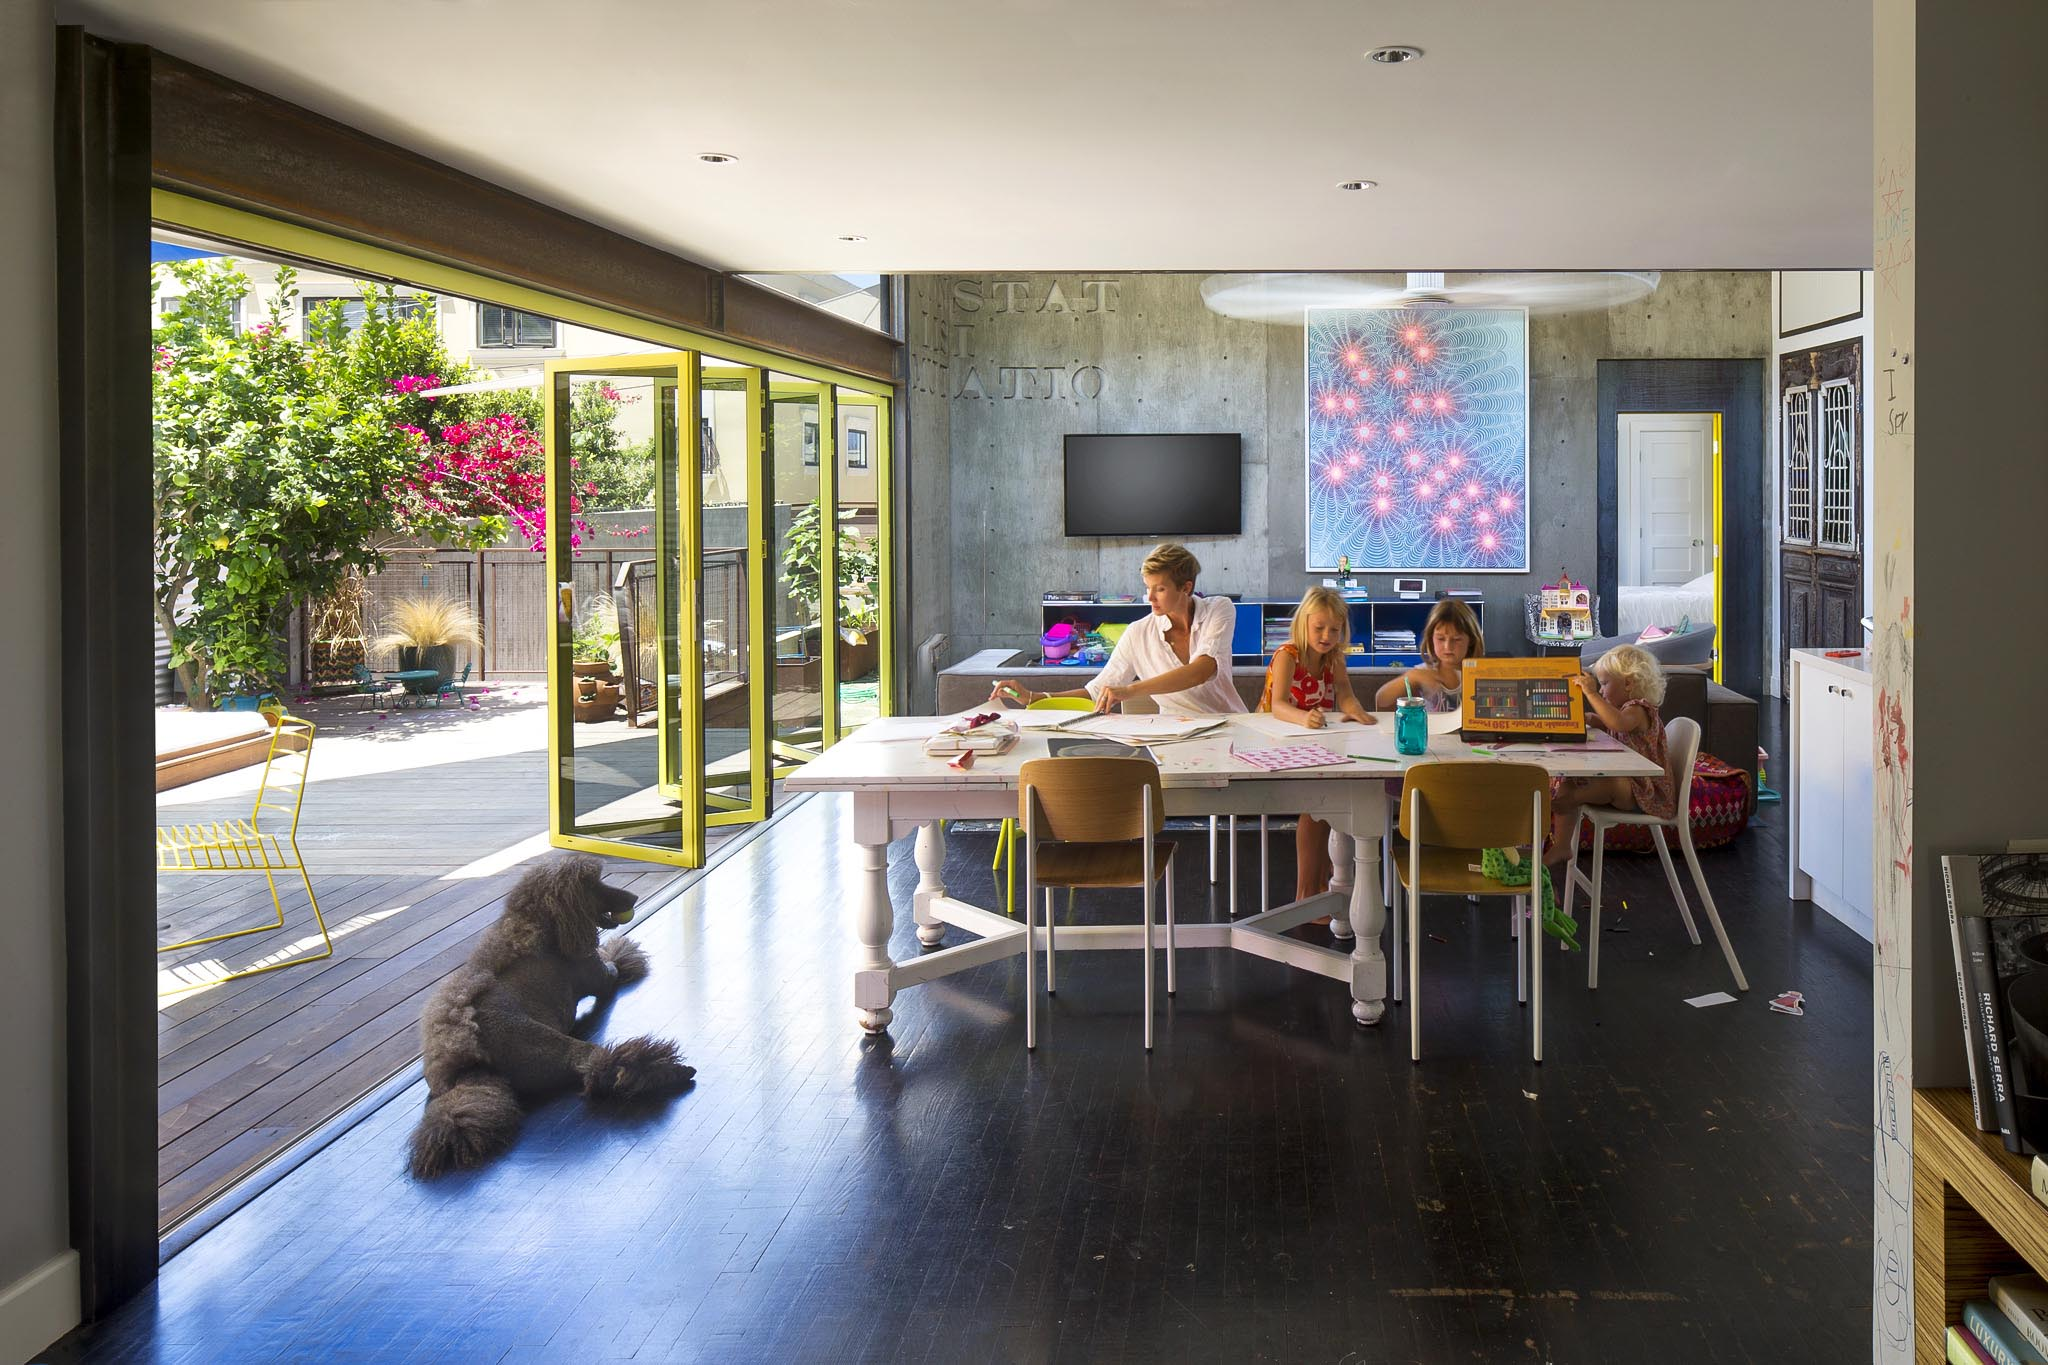 creating a healthy home for homeschooling with fresh air and daylight with bifold door